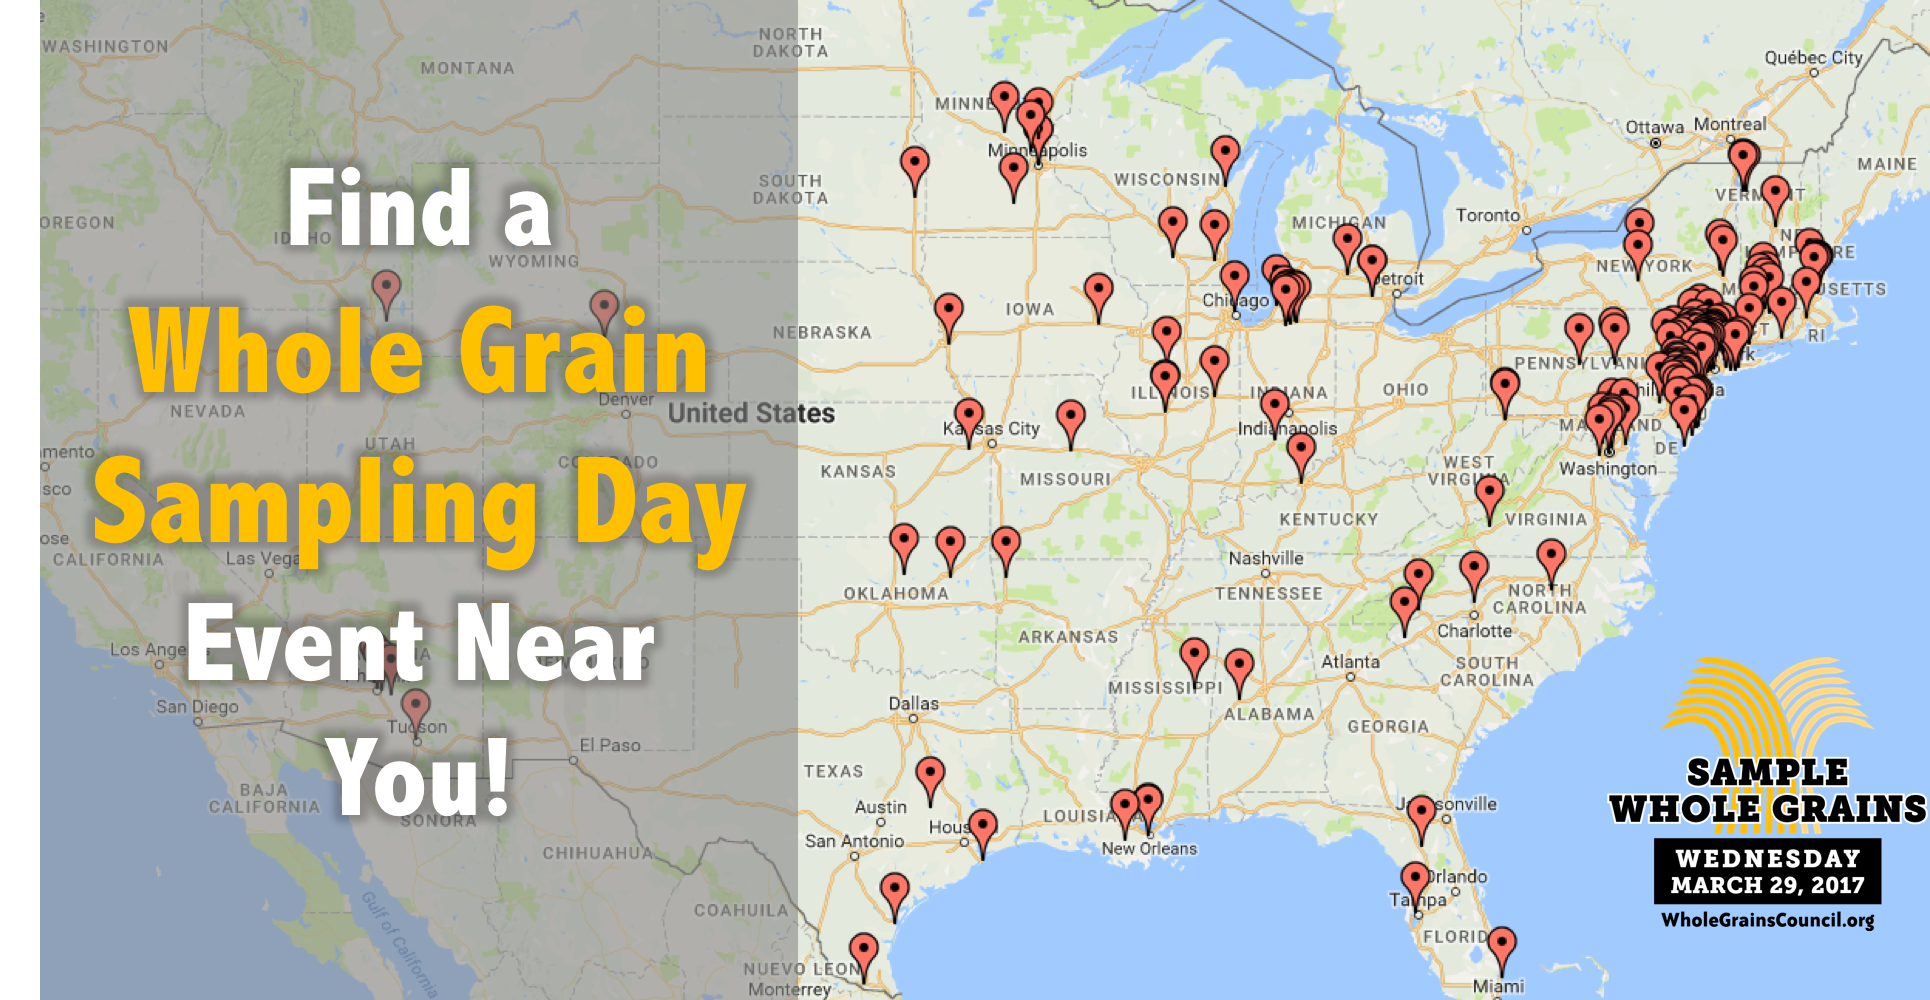 map of Whole Grain Sampling Day activities